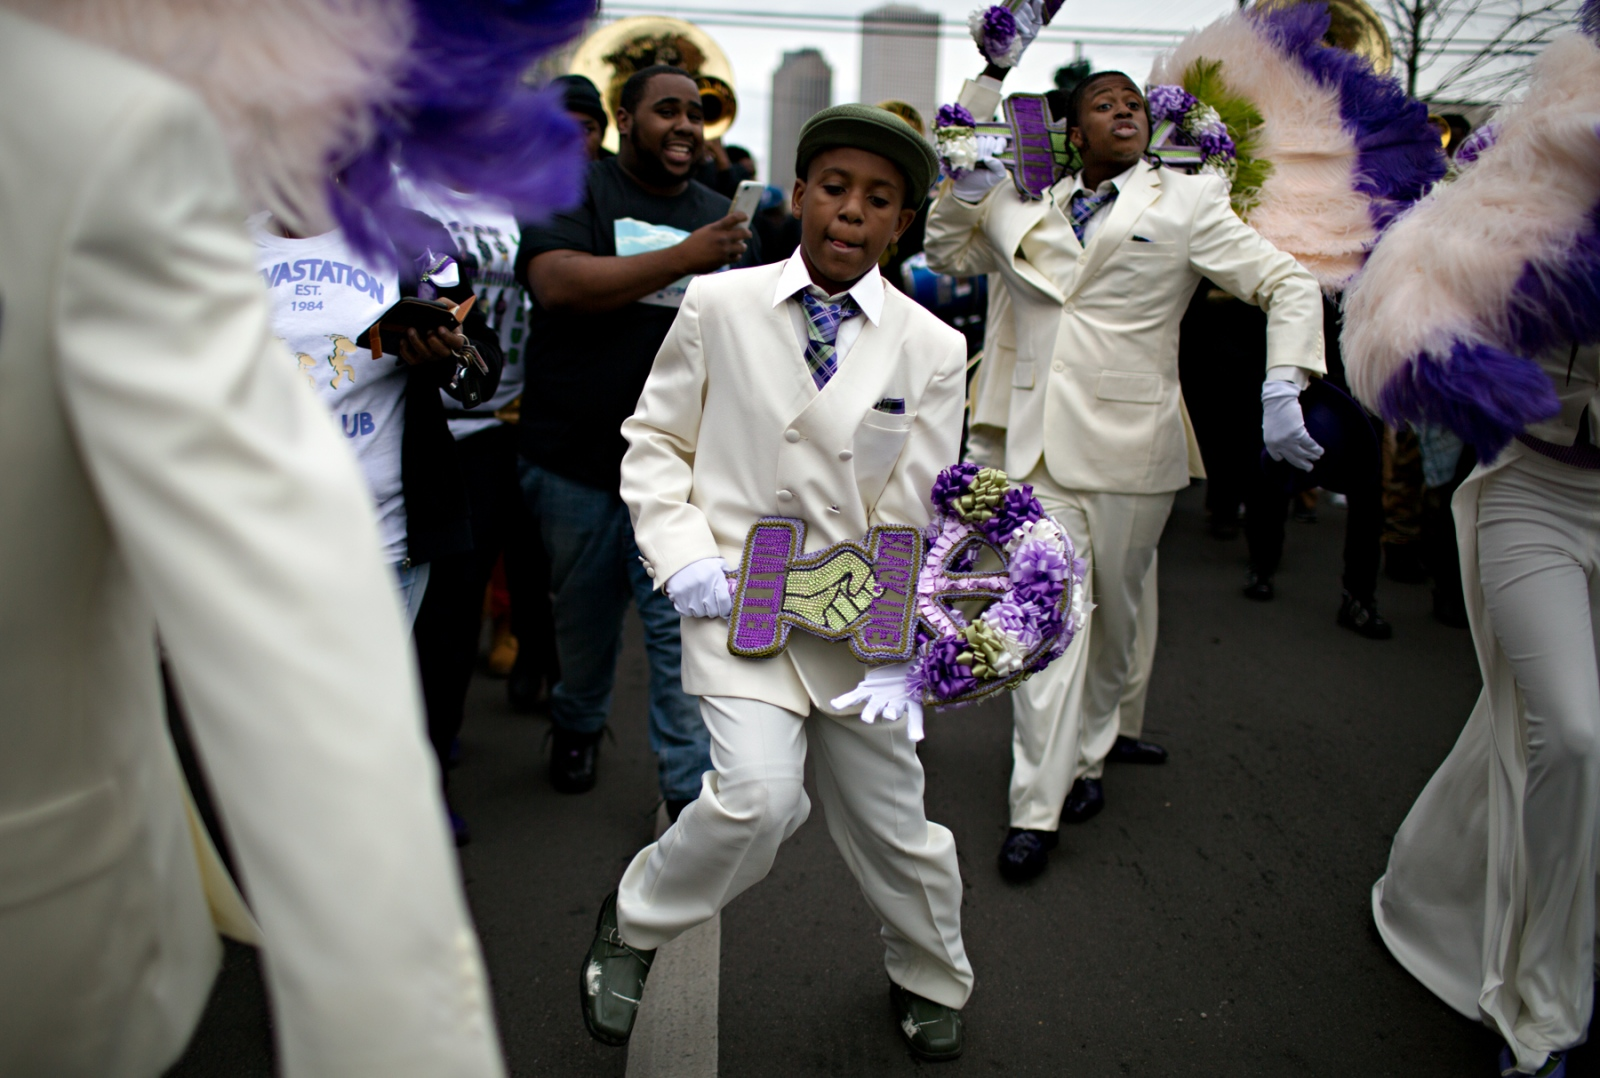 Holding a fan showing the Black Lives Matter logo, a young member of the Devastation Social Aid and Pleasure Club dances along during the Second Line Parade.